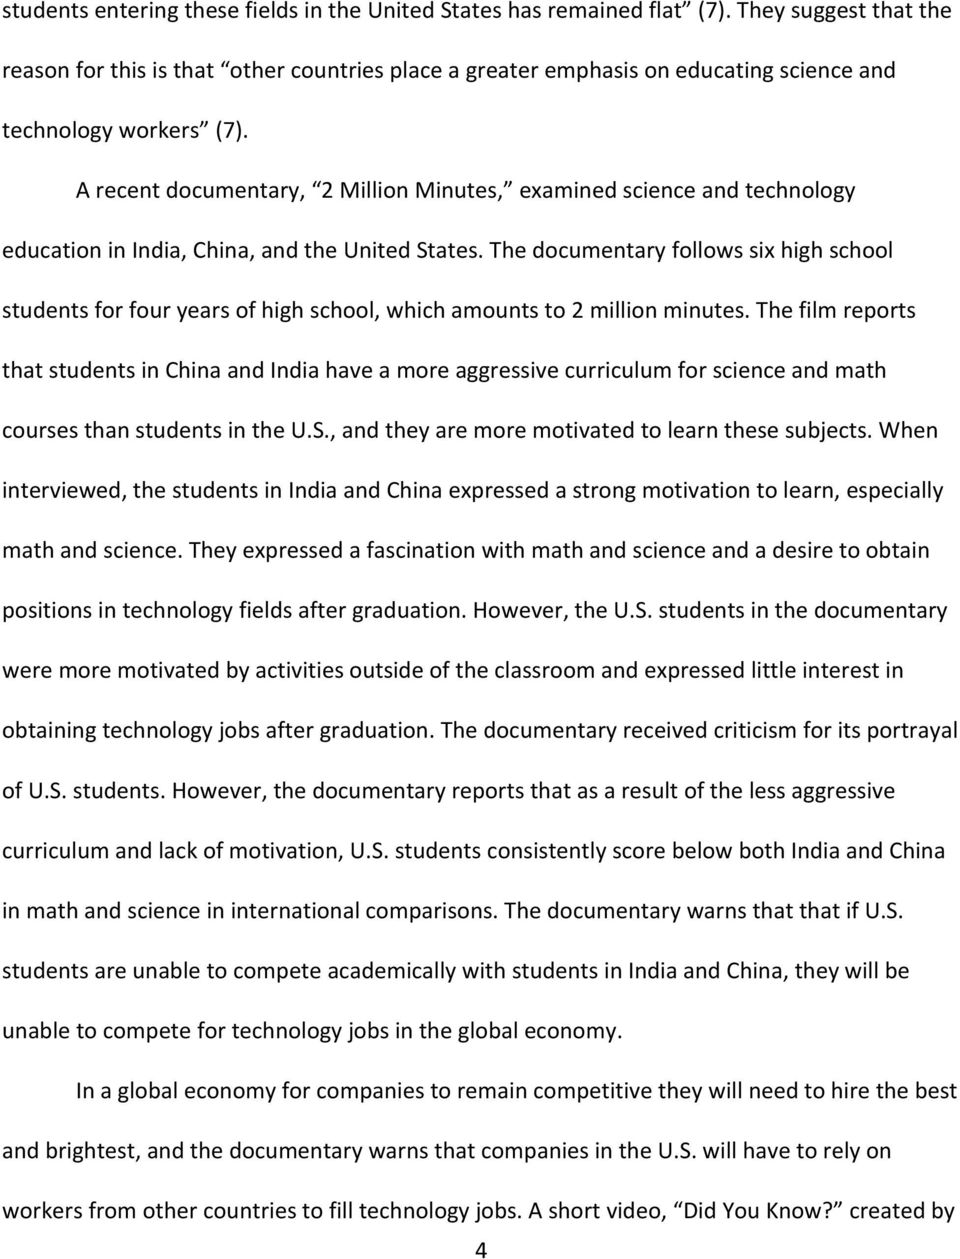 A recent documentary, 2 Million Minutes, examined science and technology education in India, China, and the United States.